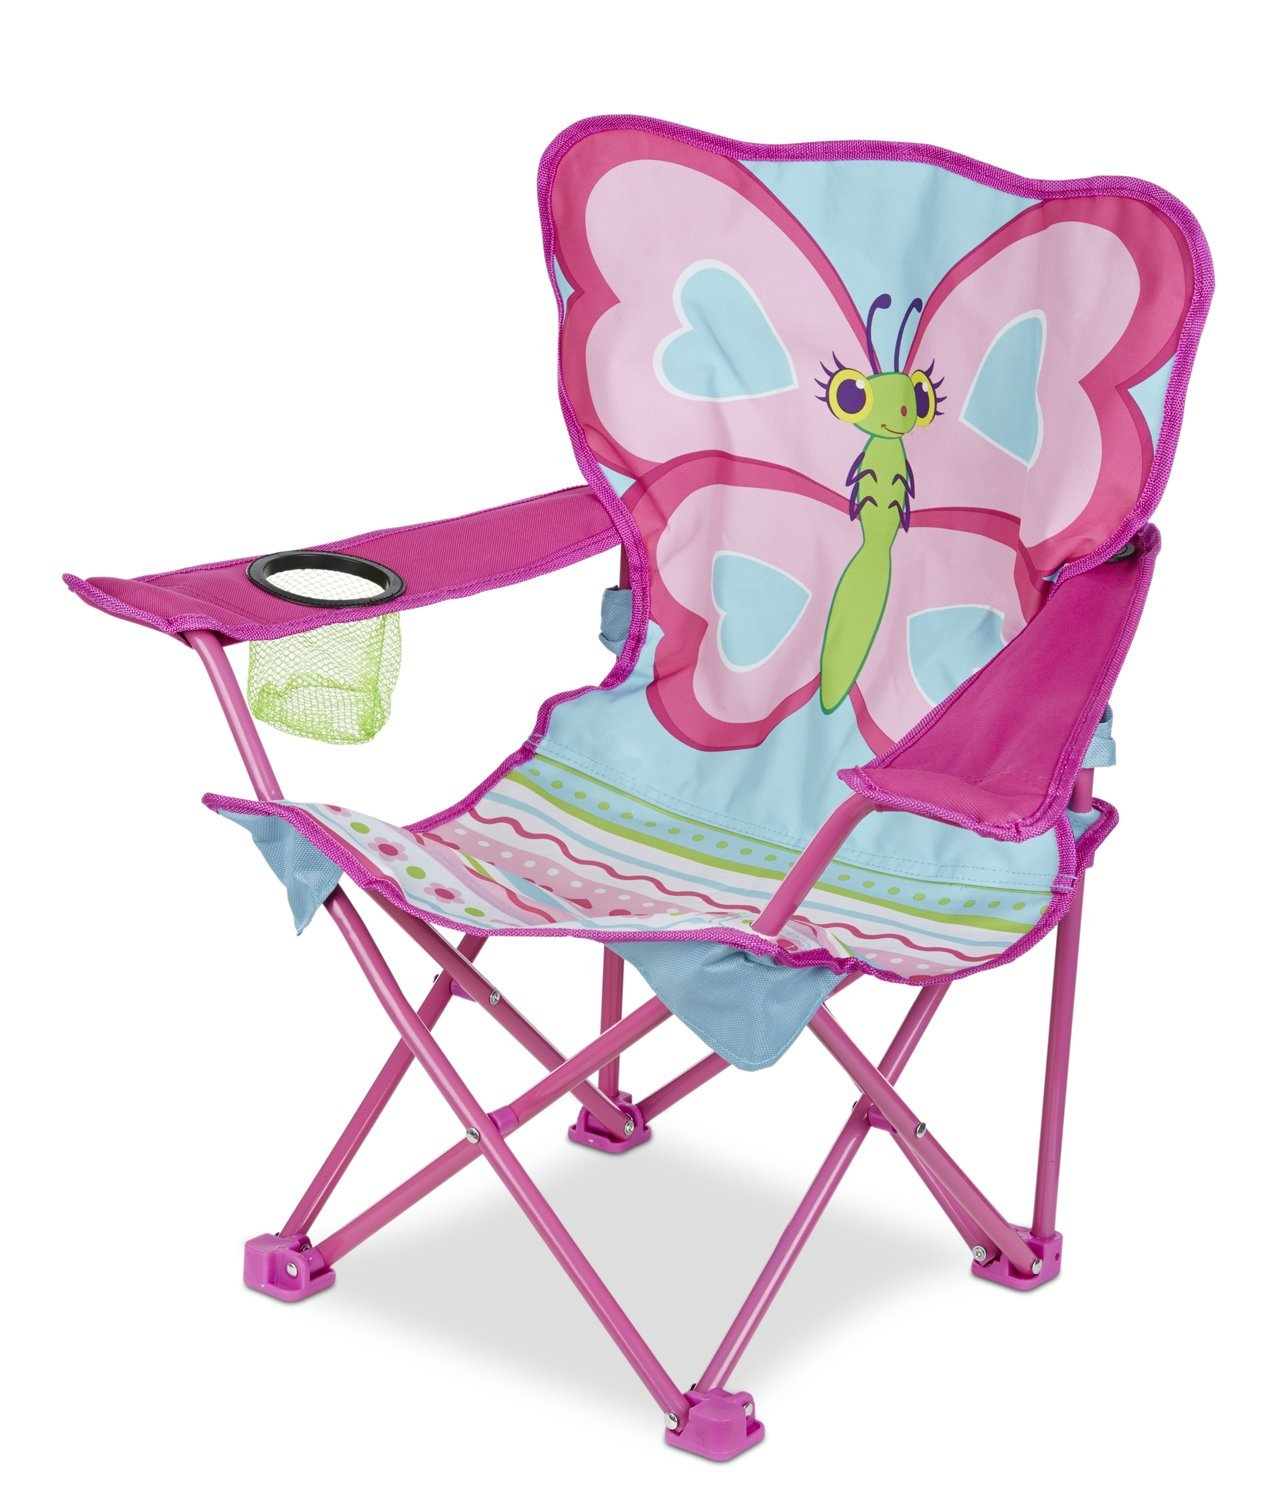 butterfly chair target wedding cover hire shrewsbury melissa and doug sunny patch cutie pie folding